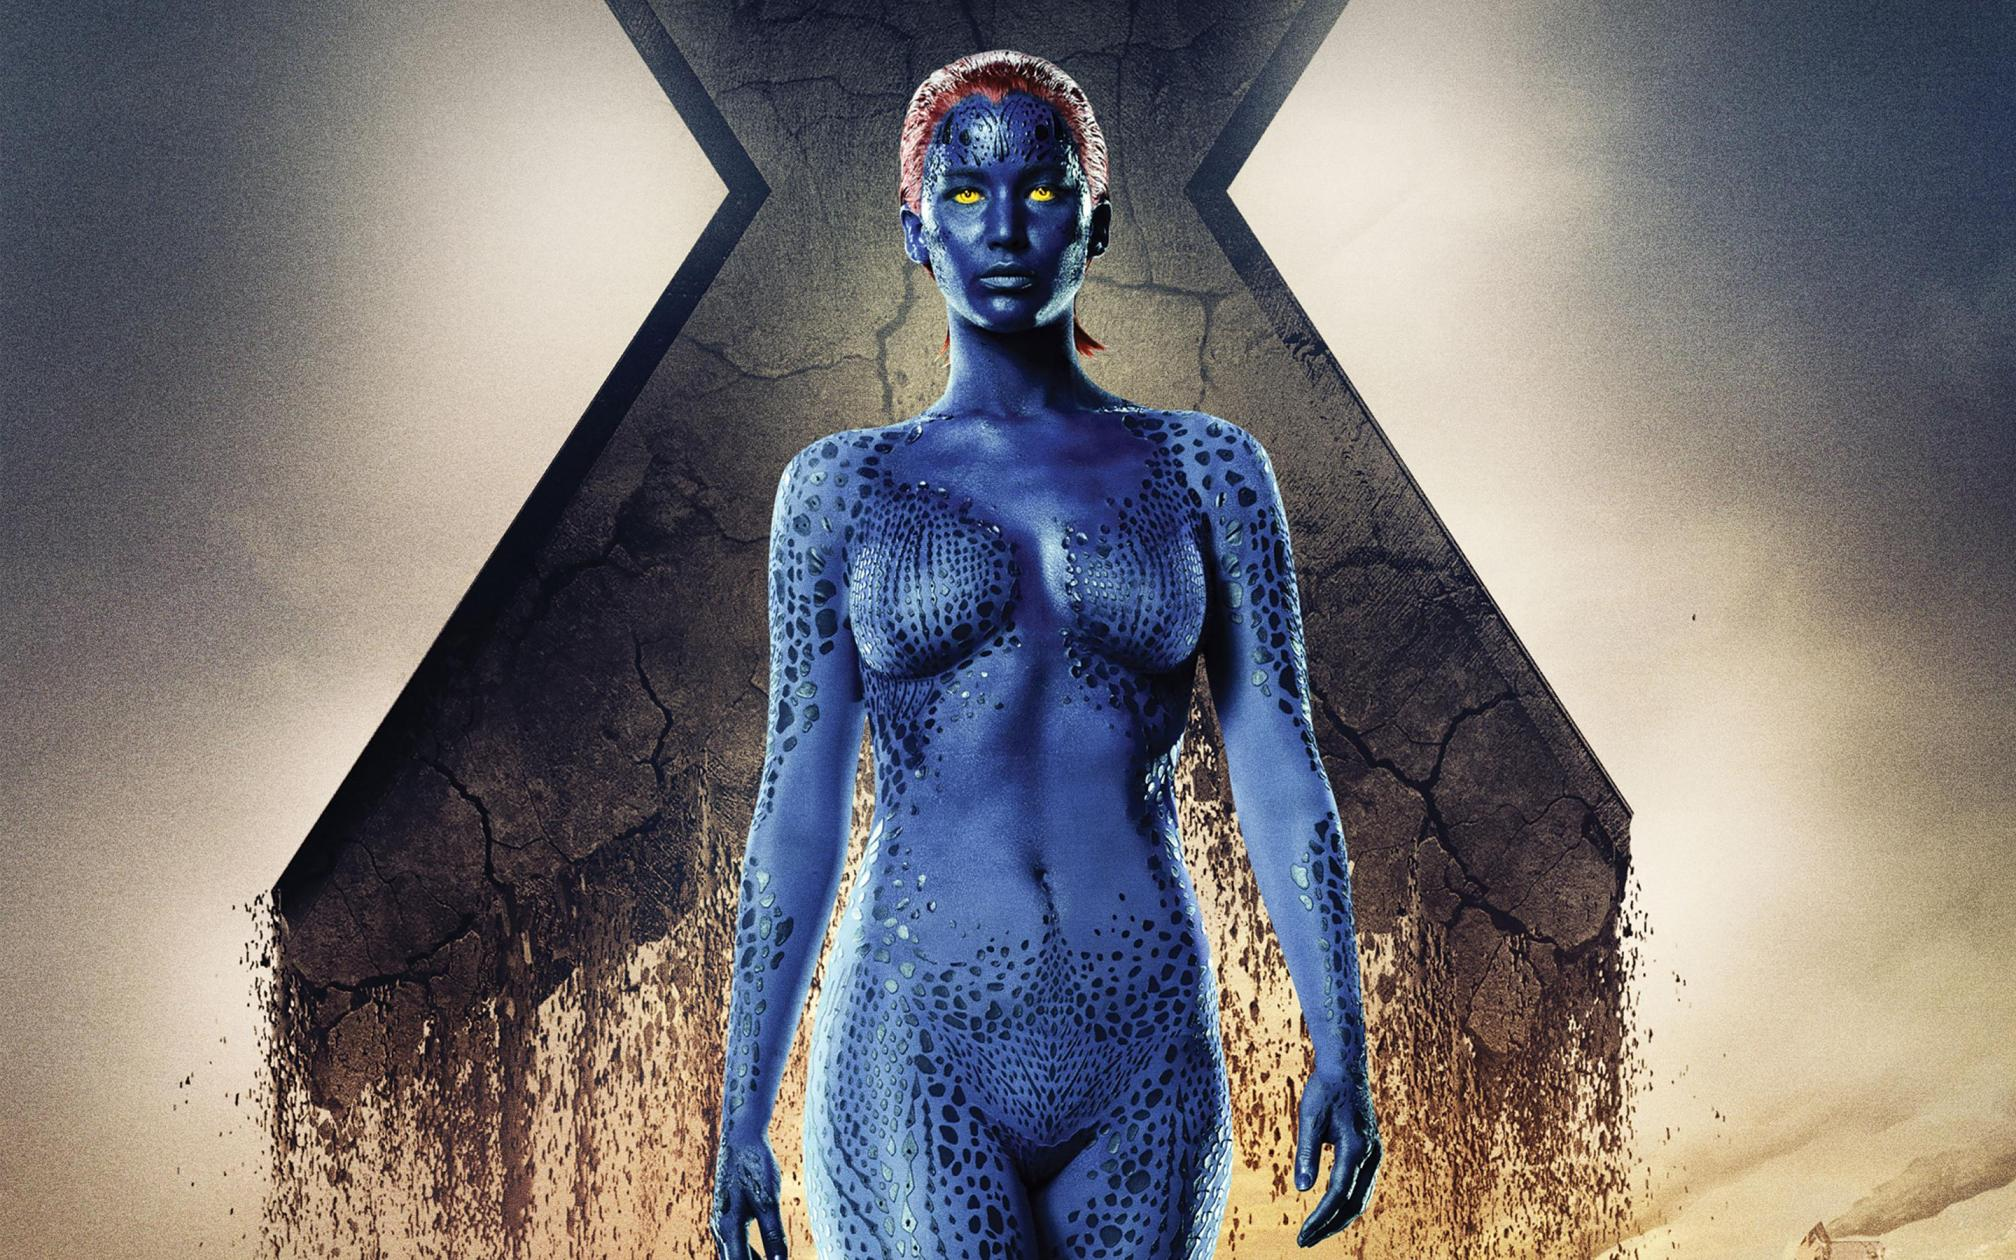 X men days of future past - Giorni di un Futuro Passato - Jennifer Lawrence - Mistica